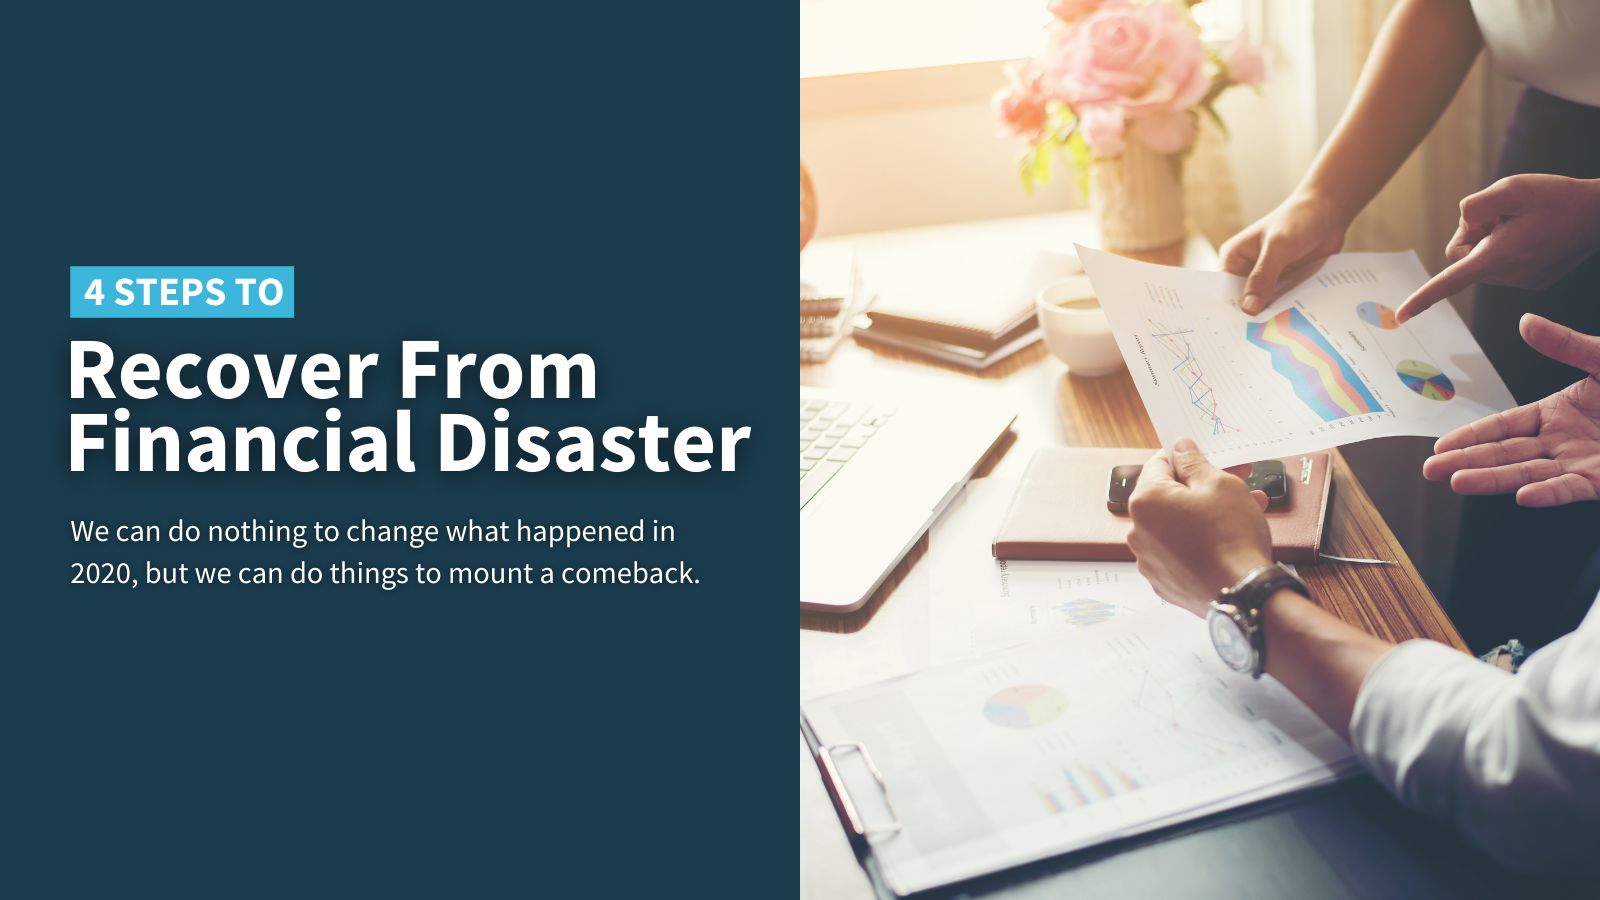 4 Steps to Recover From Financial Disaster Thumbnail